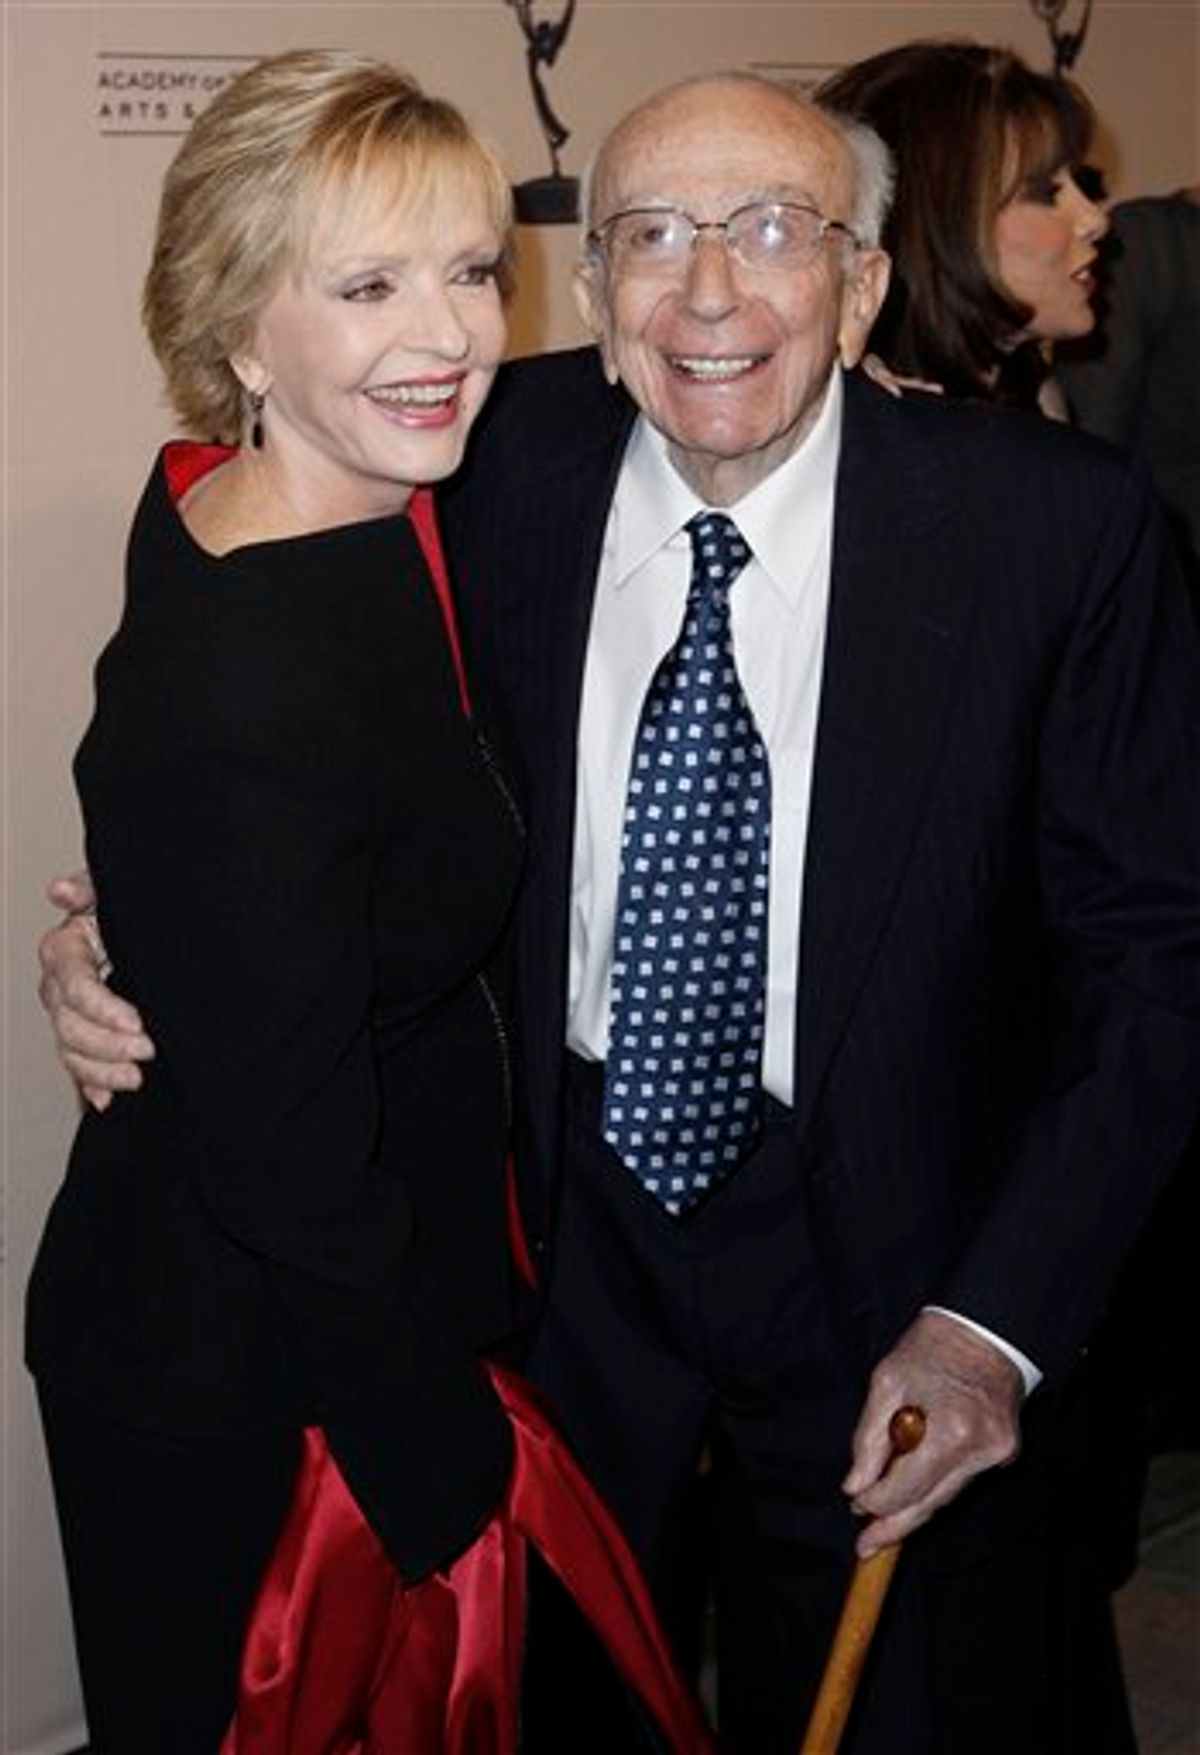 """FILE - In this Dec. 9, 2008 file photo, Hall of Fame inductee Sherwood Schwartz, right, and actress Florence Henderson pose together at the Academy of Television Arts and Sciences 2008 Hall of Fame Ceremony in Beverly Hills, Calif. Schwartz, who created """"Gilligan's Island"""" and """"The Brady Bunch"""" died Tuesday, July 12, 2011. He was 94.  (AP Photo/Matt Sayles, file)  (AP)"""